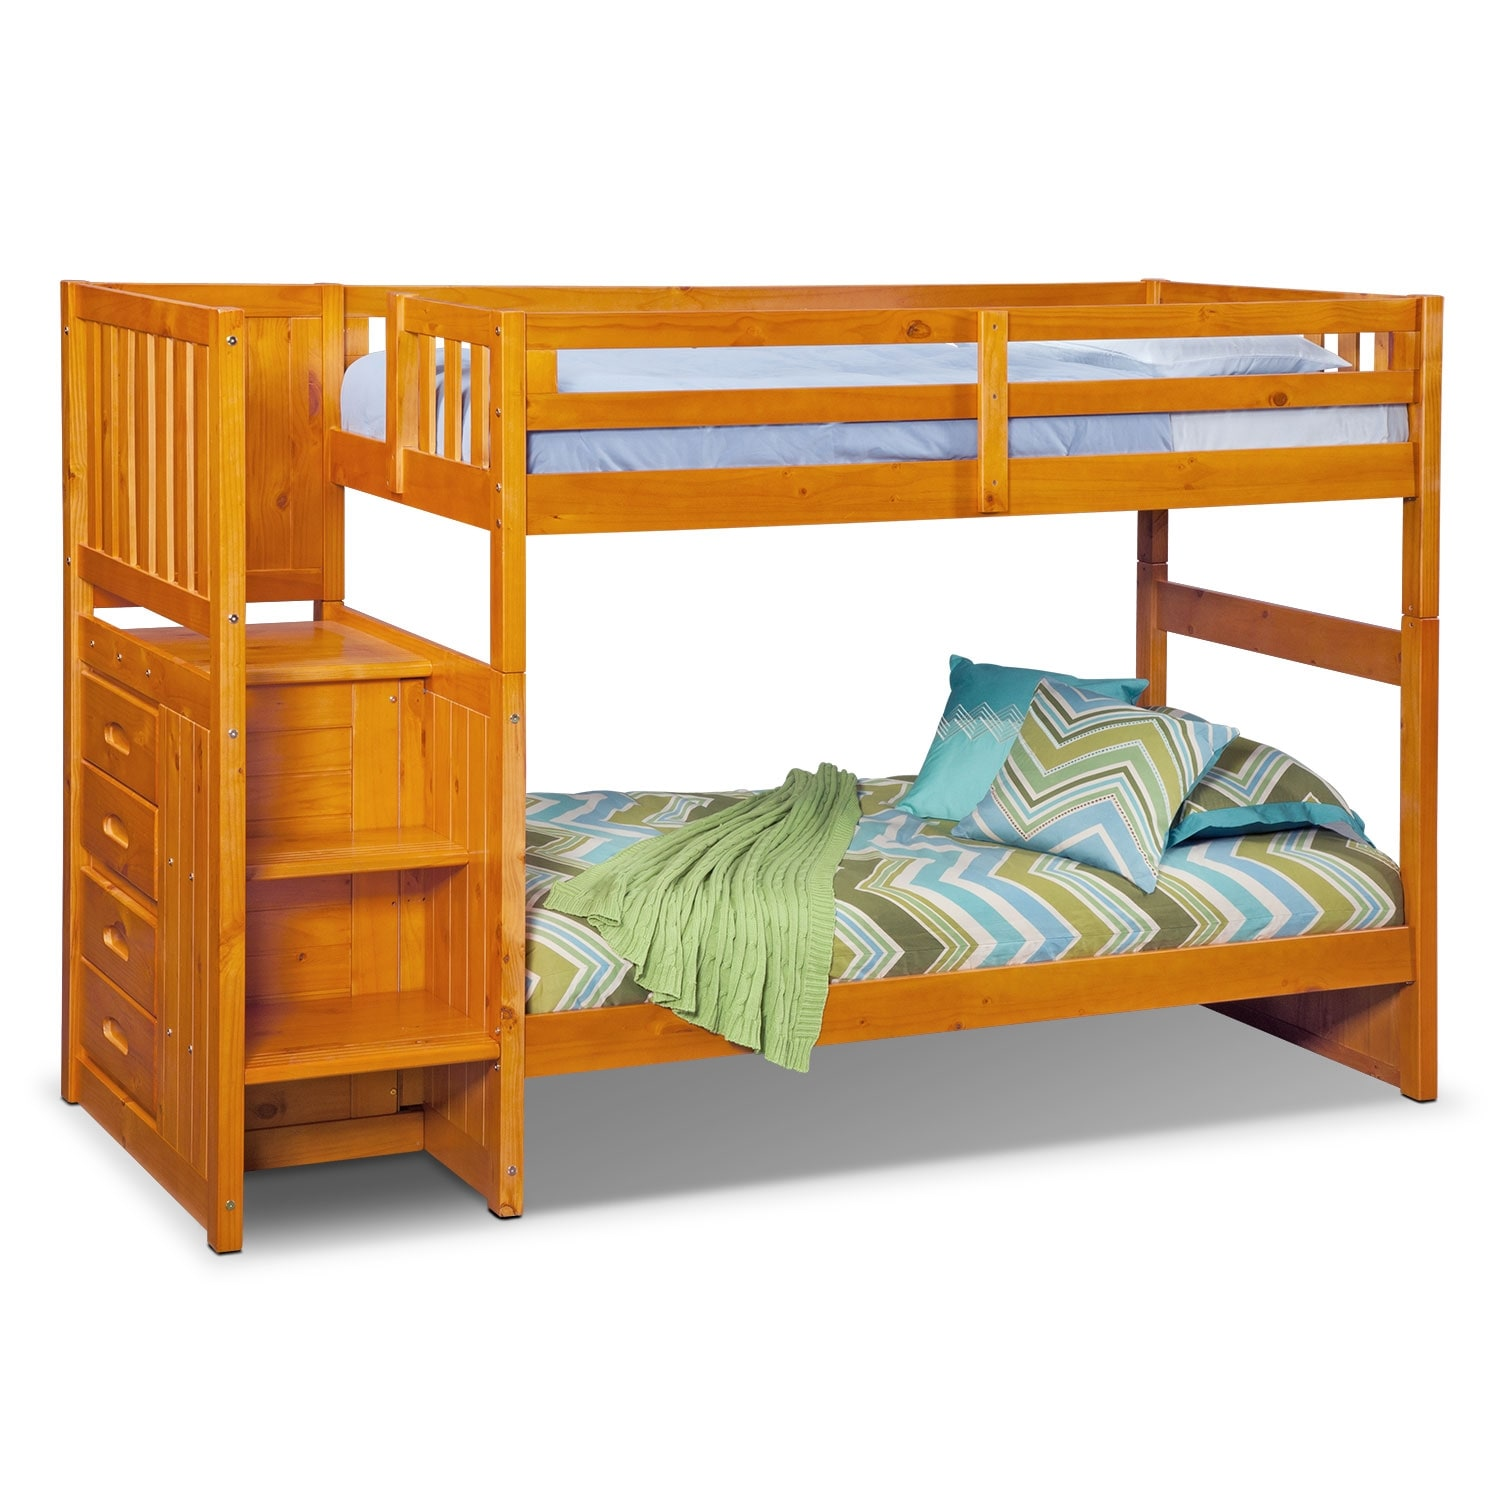 ranger twin over twin bunk bed with storage stairs pine value city furniture and mattresses. Black Bedroom Furniture Sets. Home Design Ideas